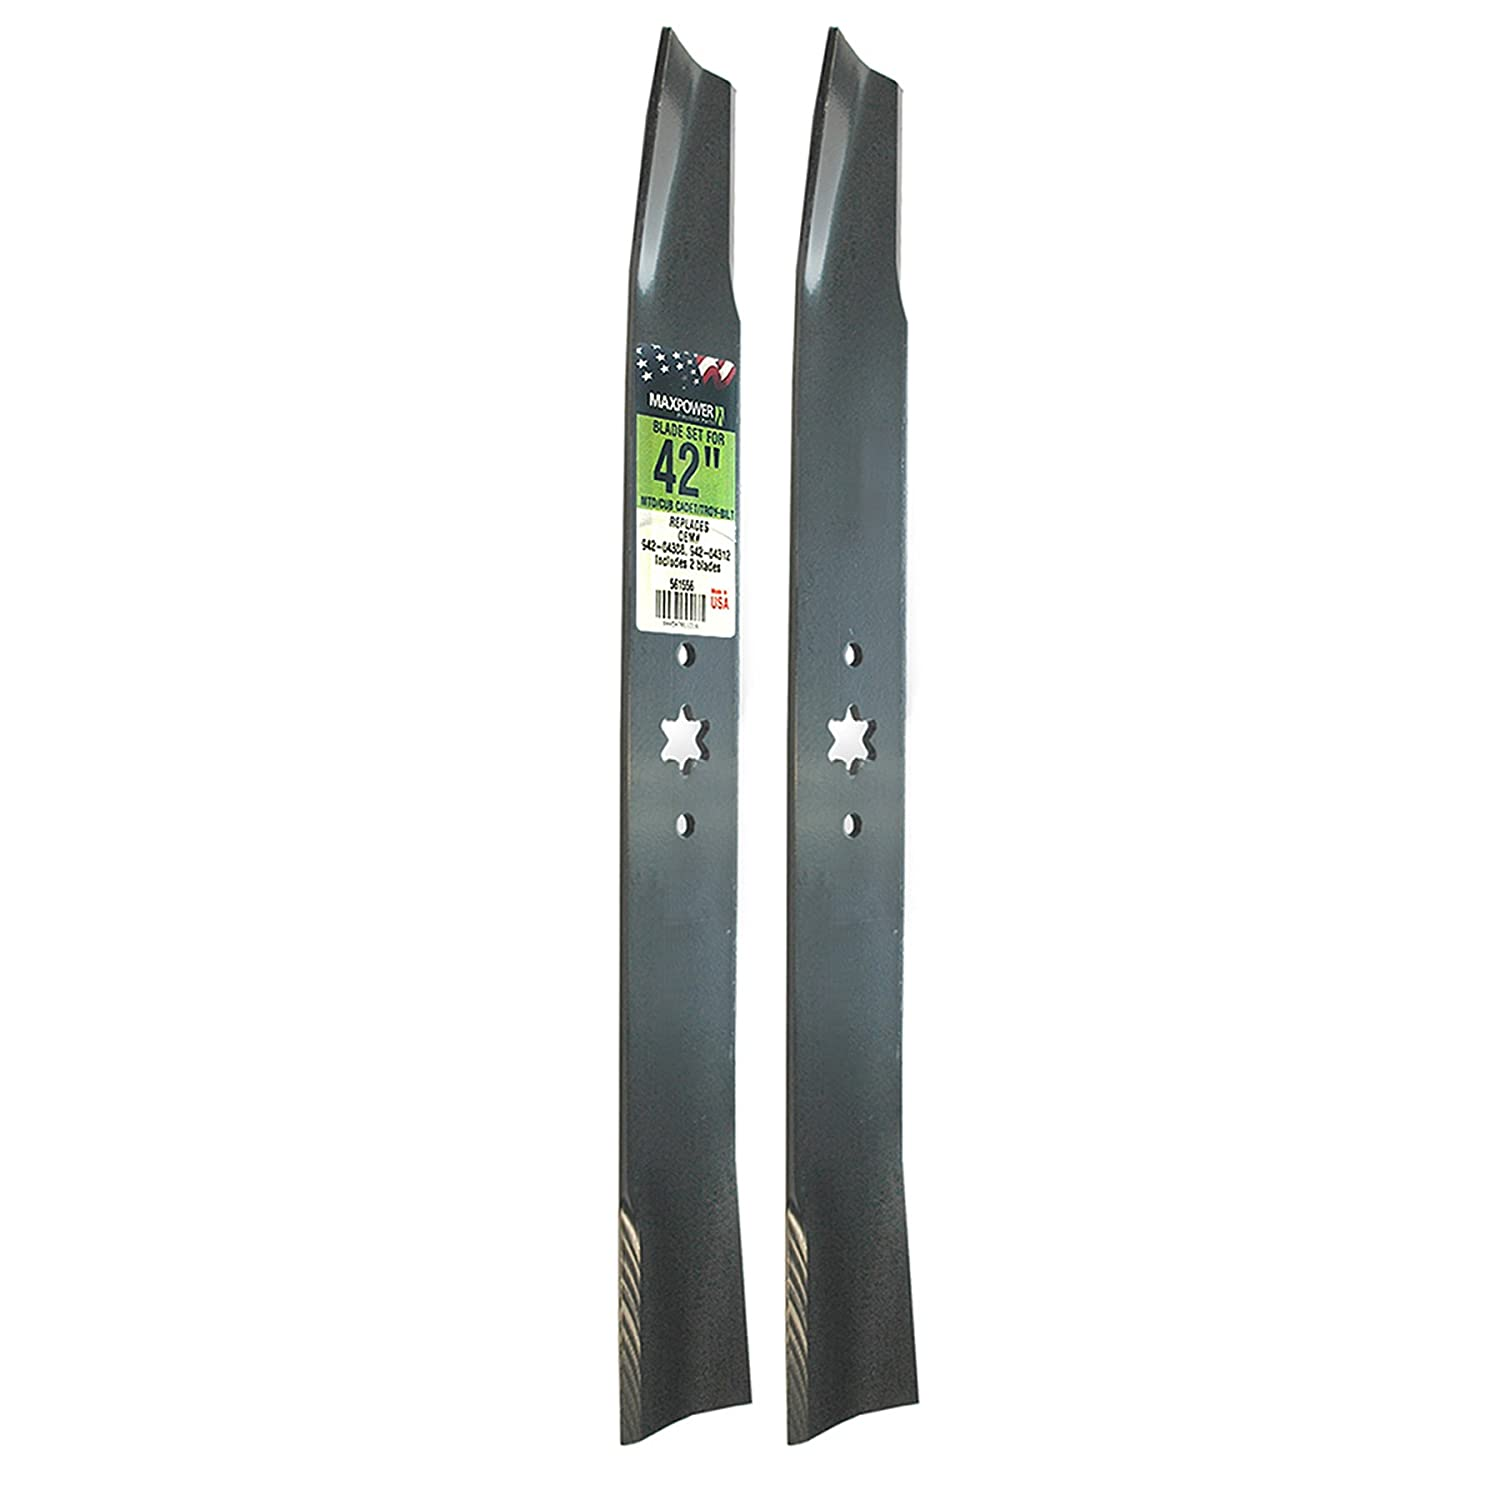 "Maxpower 561556 (2) Blade Set for 42"" Cut MTD, Cub Cadet, and Troy-Bilt Replaces OEM No. 742-04308, 742-04312, 942-04308, 942-04312, 119-8456"